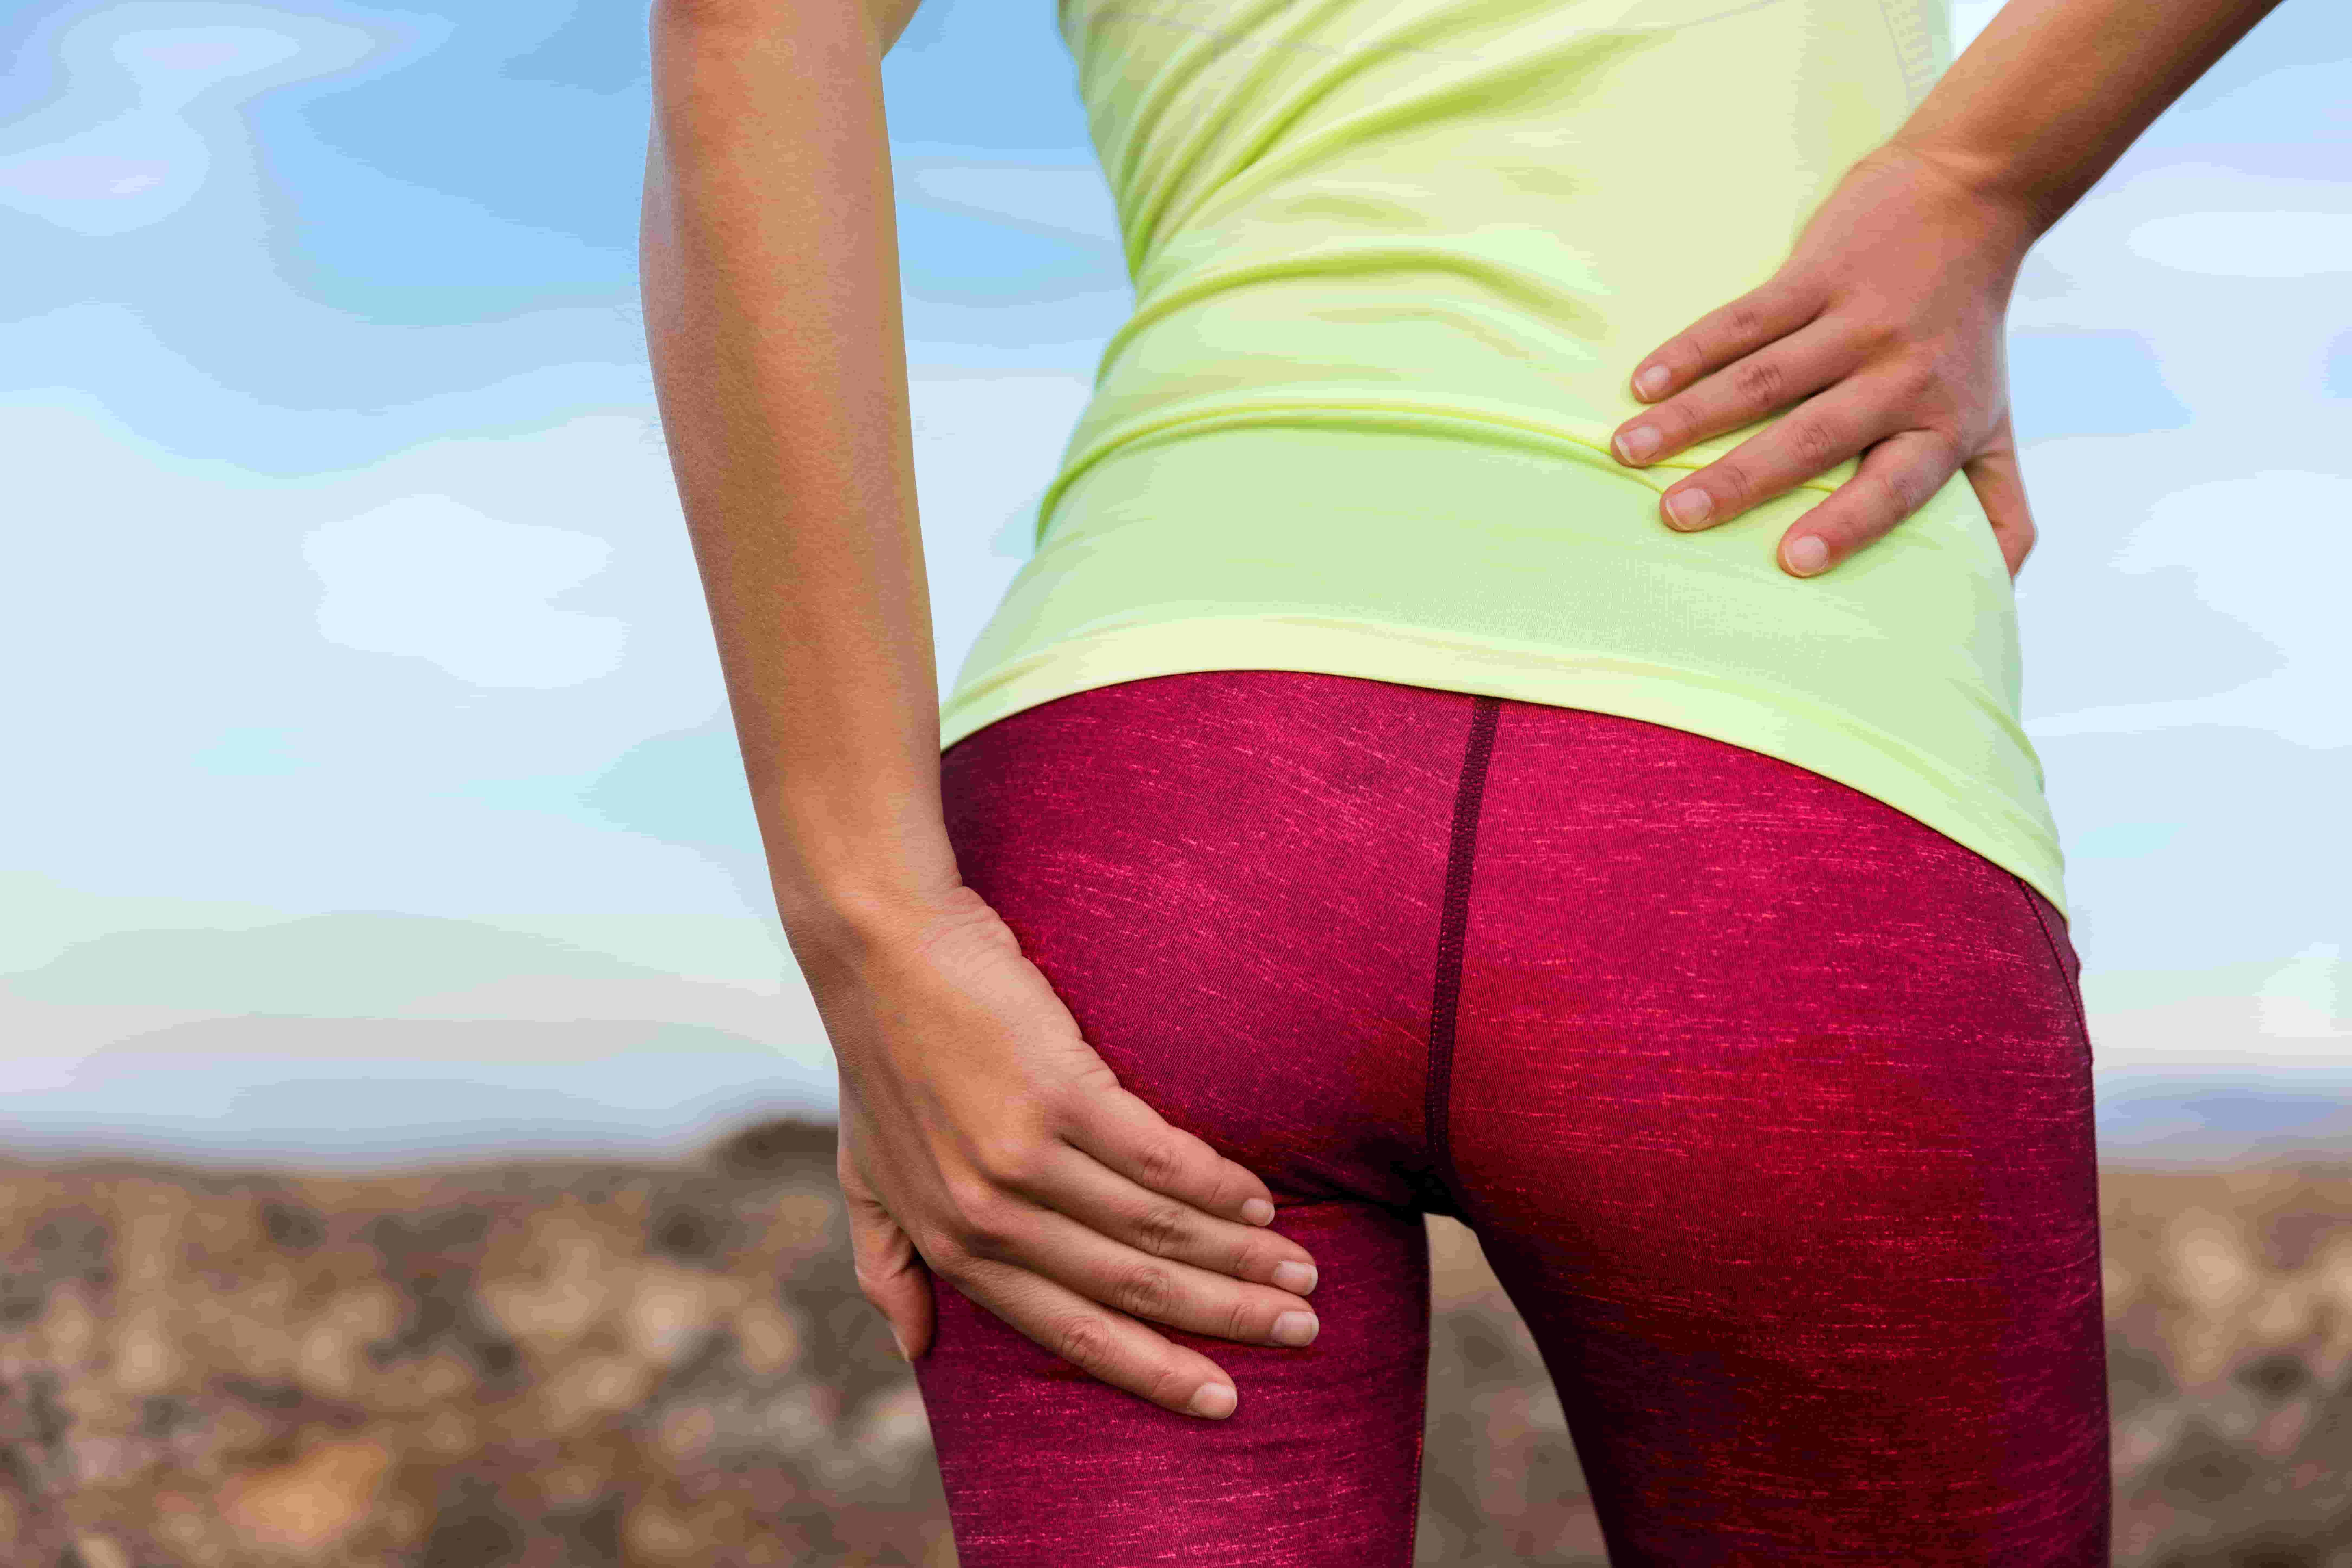 I have buttock pain what is it?